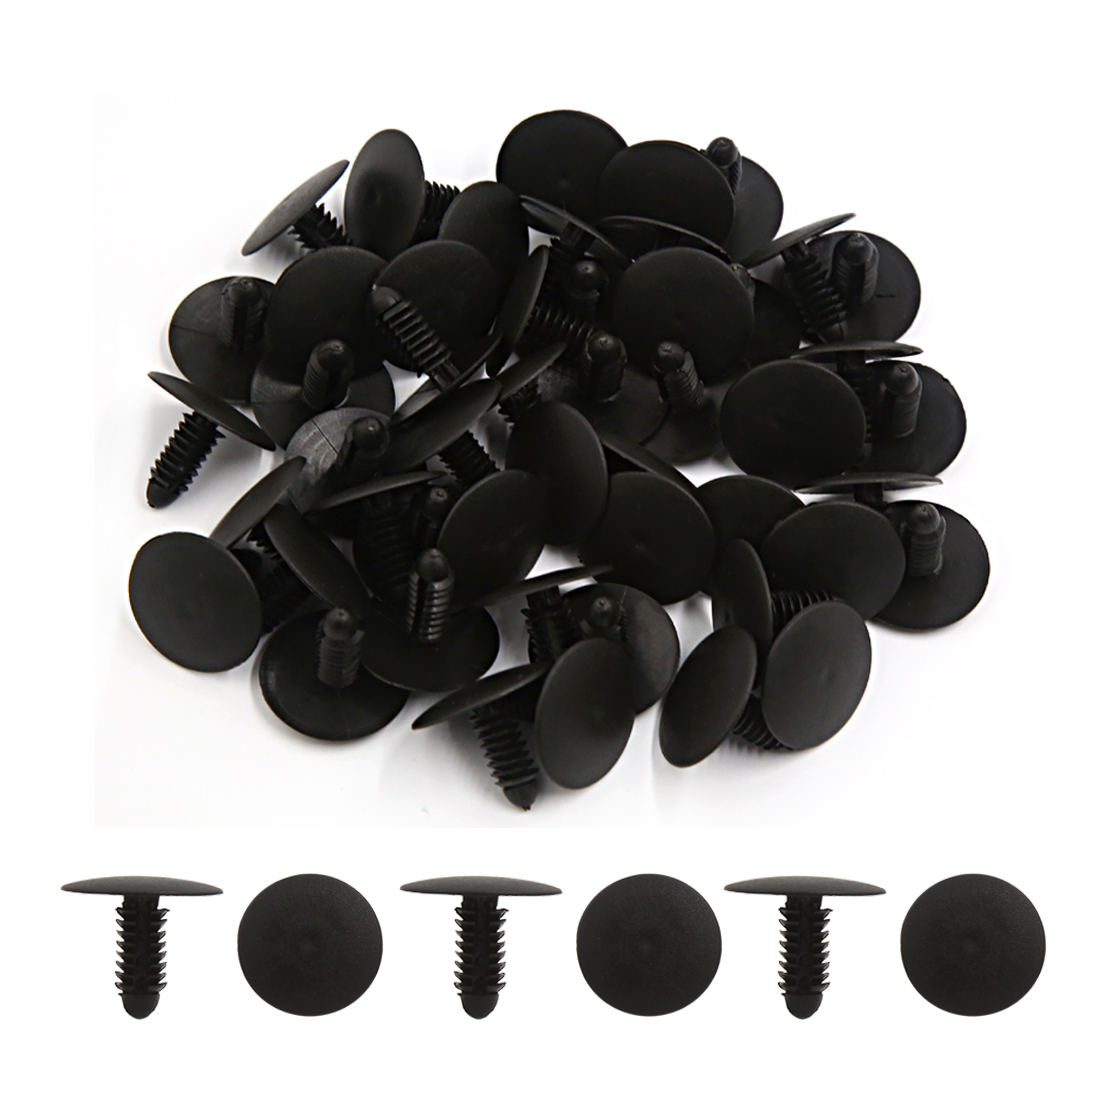 50Pcs 8mm Hole 0.31Inch Clips Push Type Rivet Retainer Fastener Bumper Pin Car - image 1 of 2